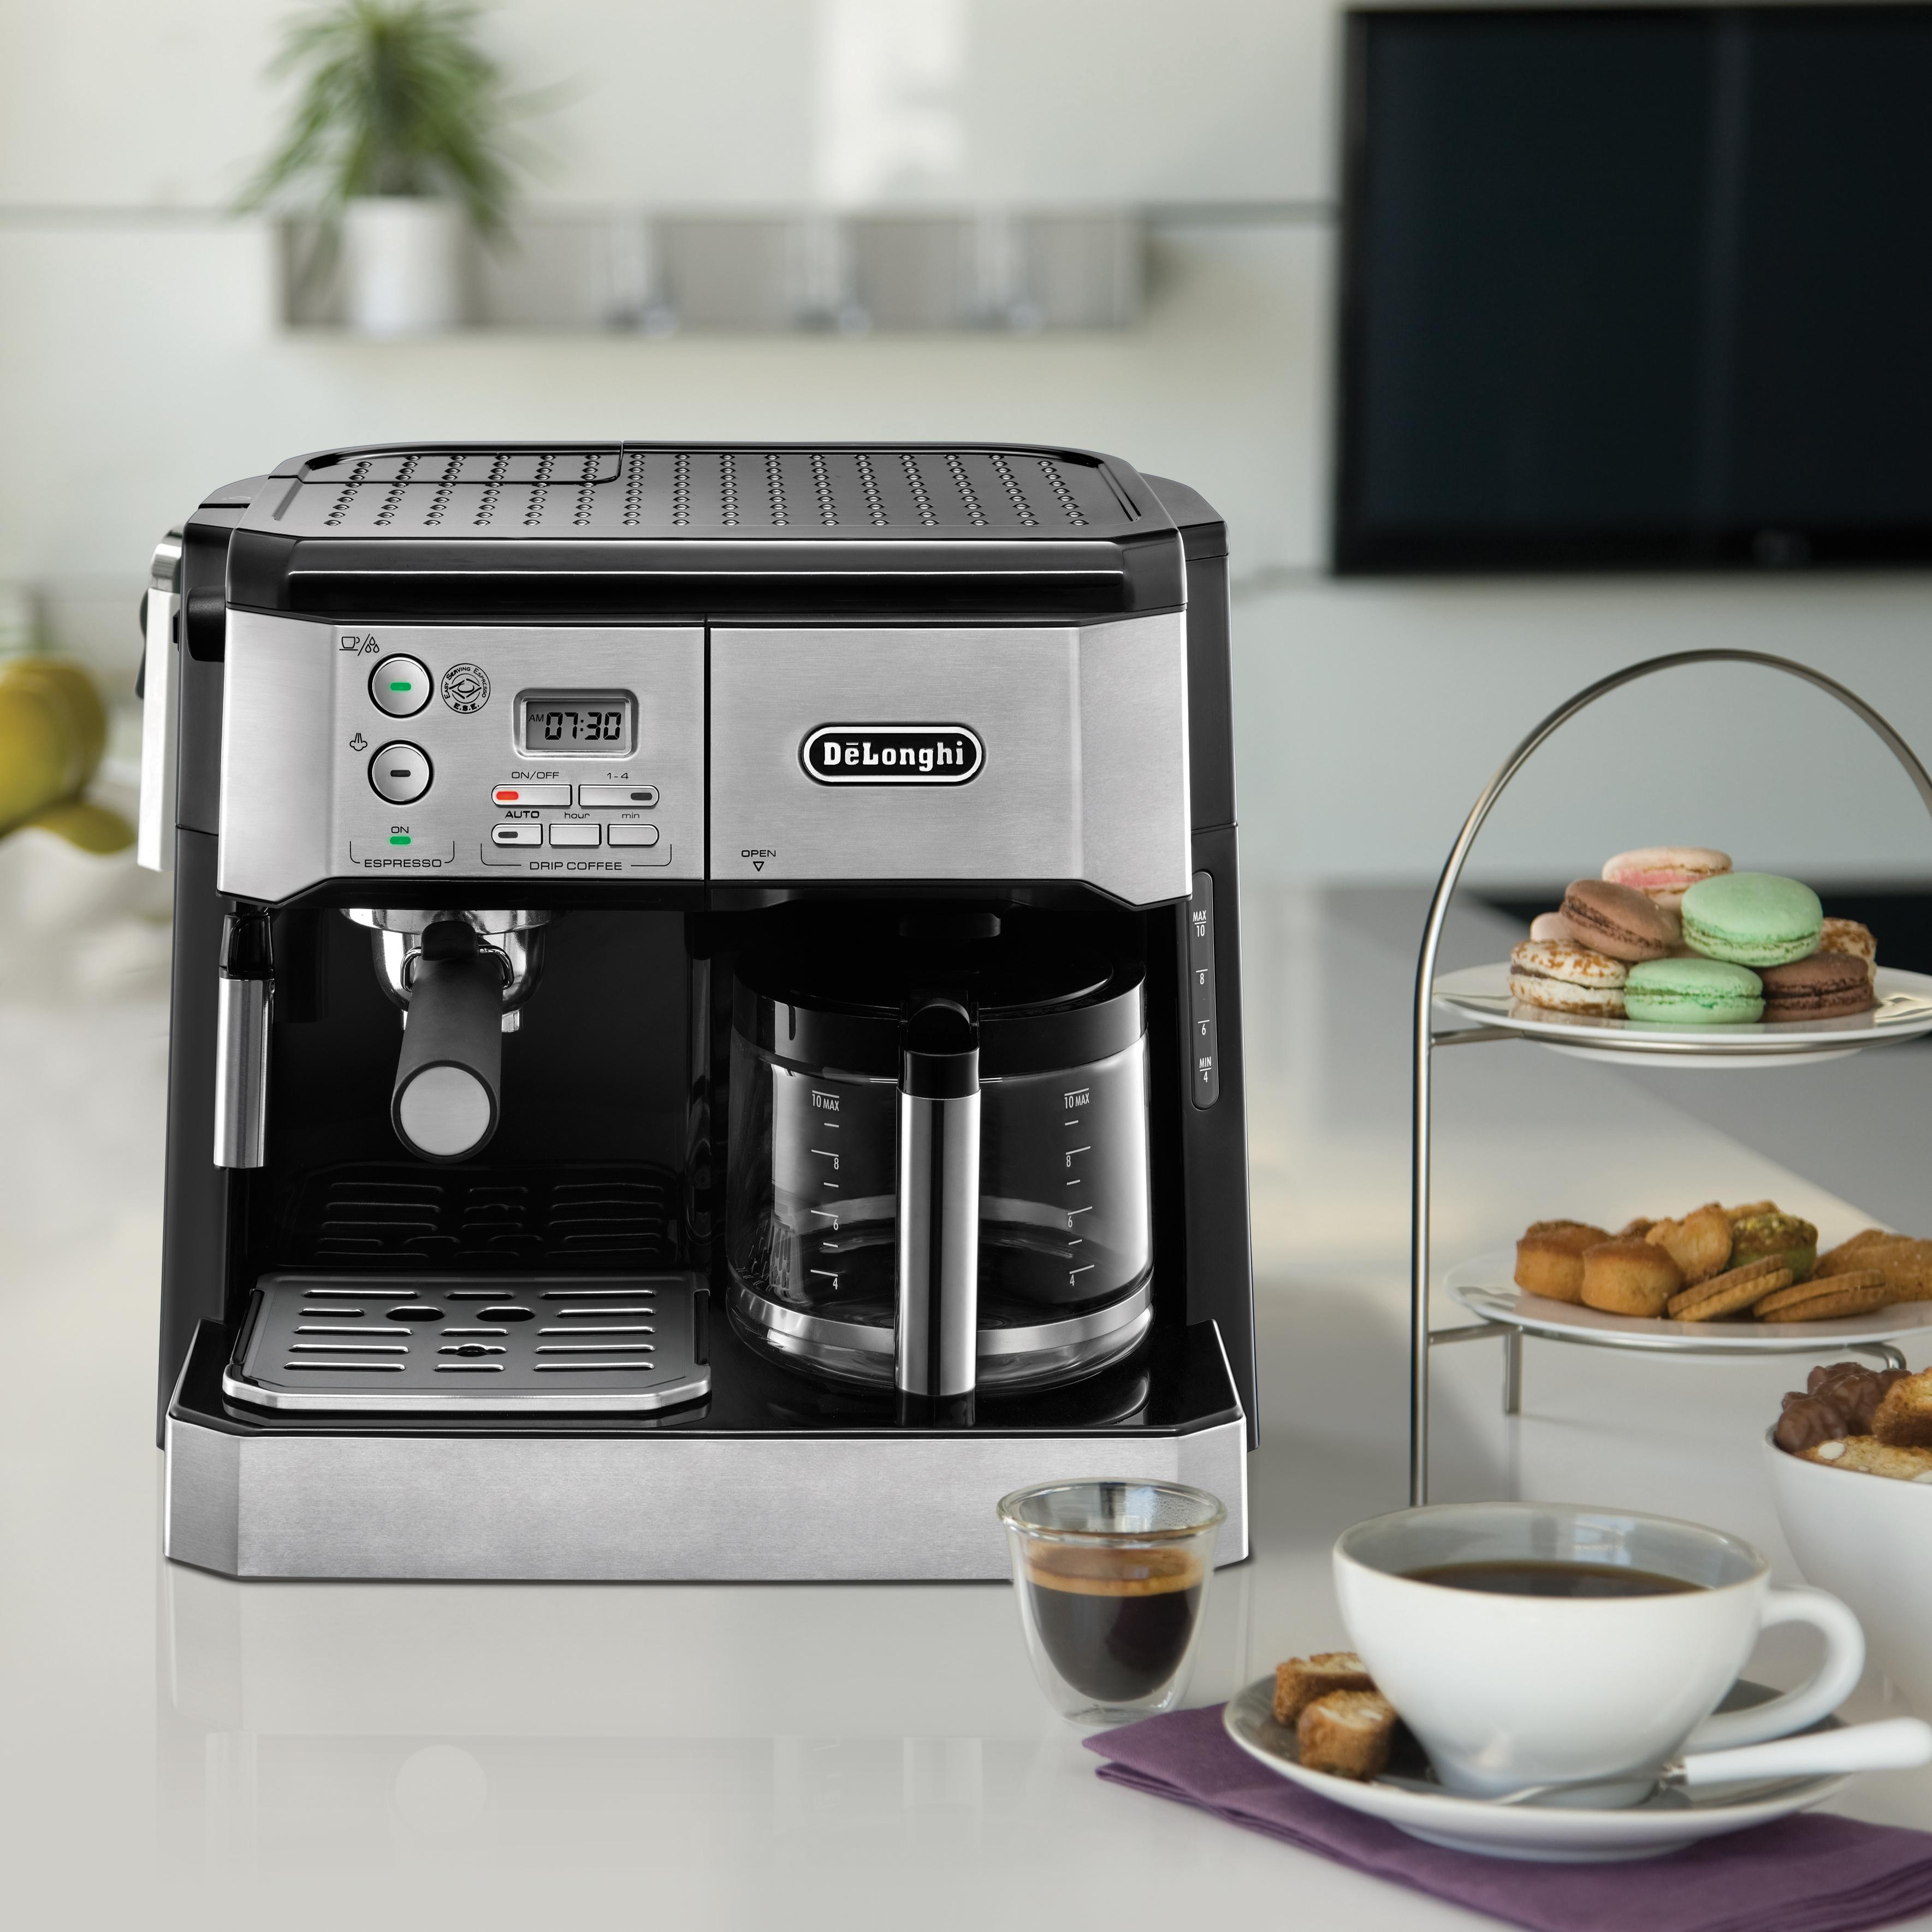 Espresso Drip Coffee Maker Combo : Amazon.com: DeLonghi BCO430 Combination Pump Espresso and 10-cup Drip Coffee Machine with ...